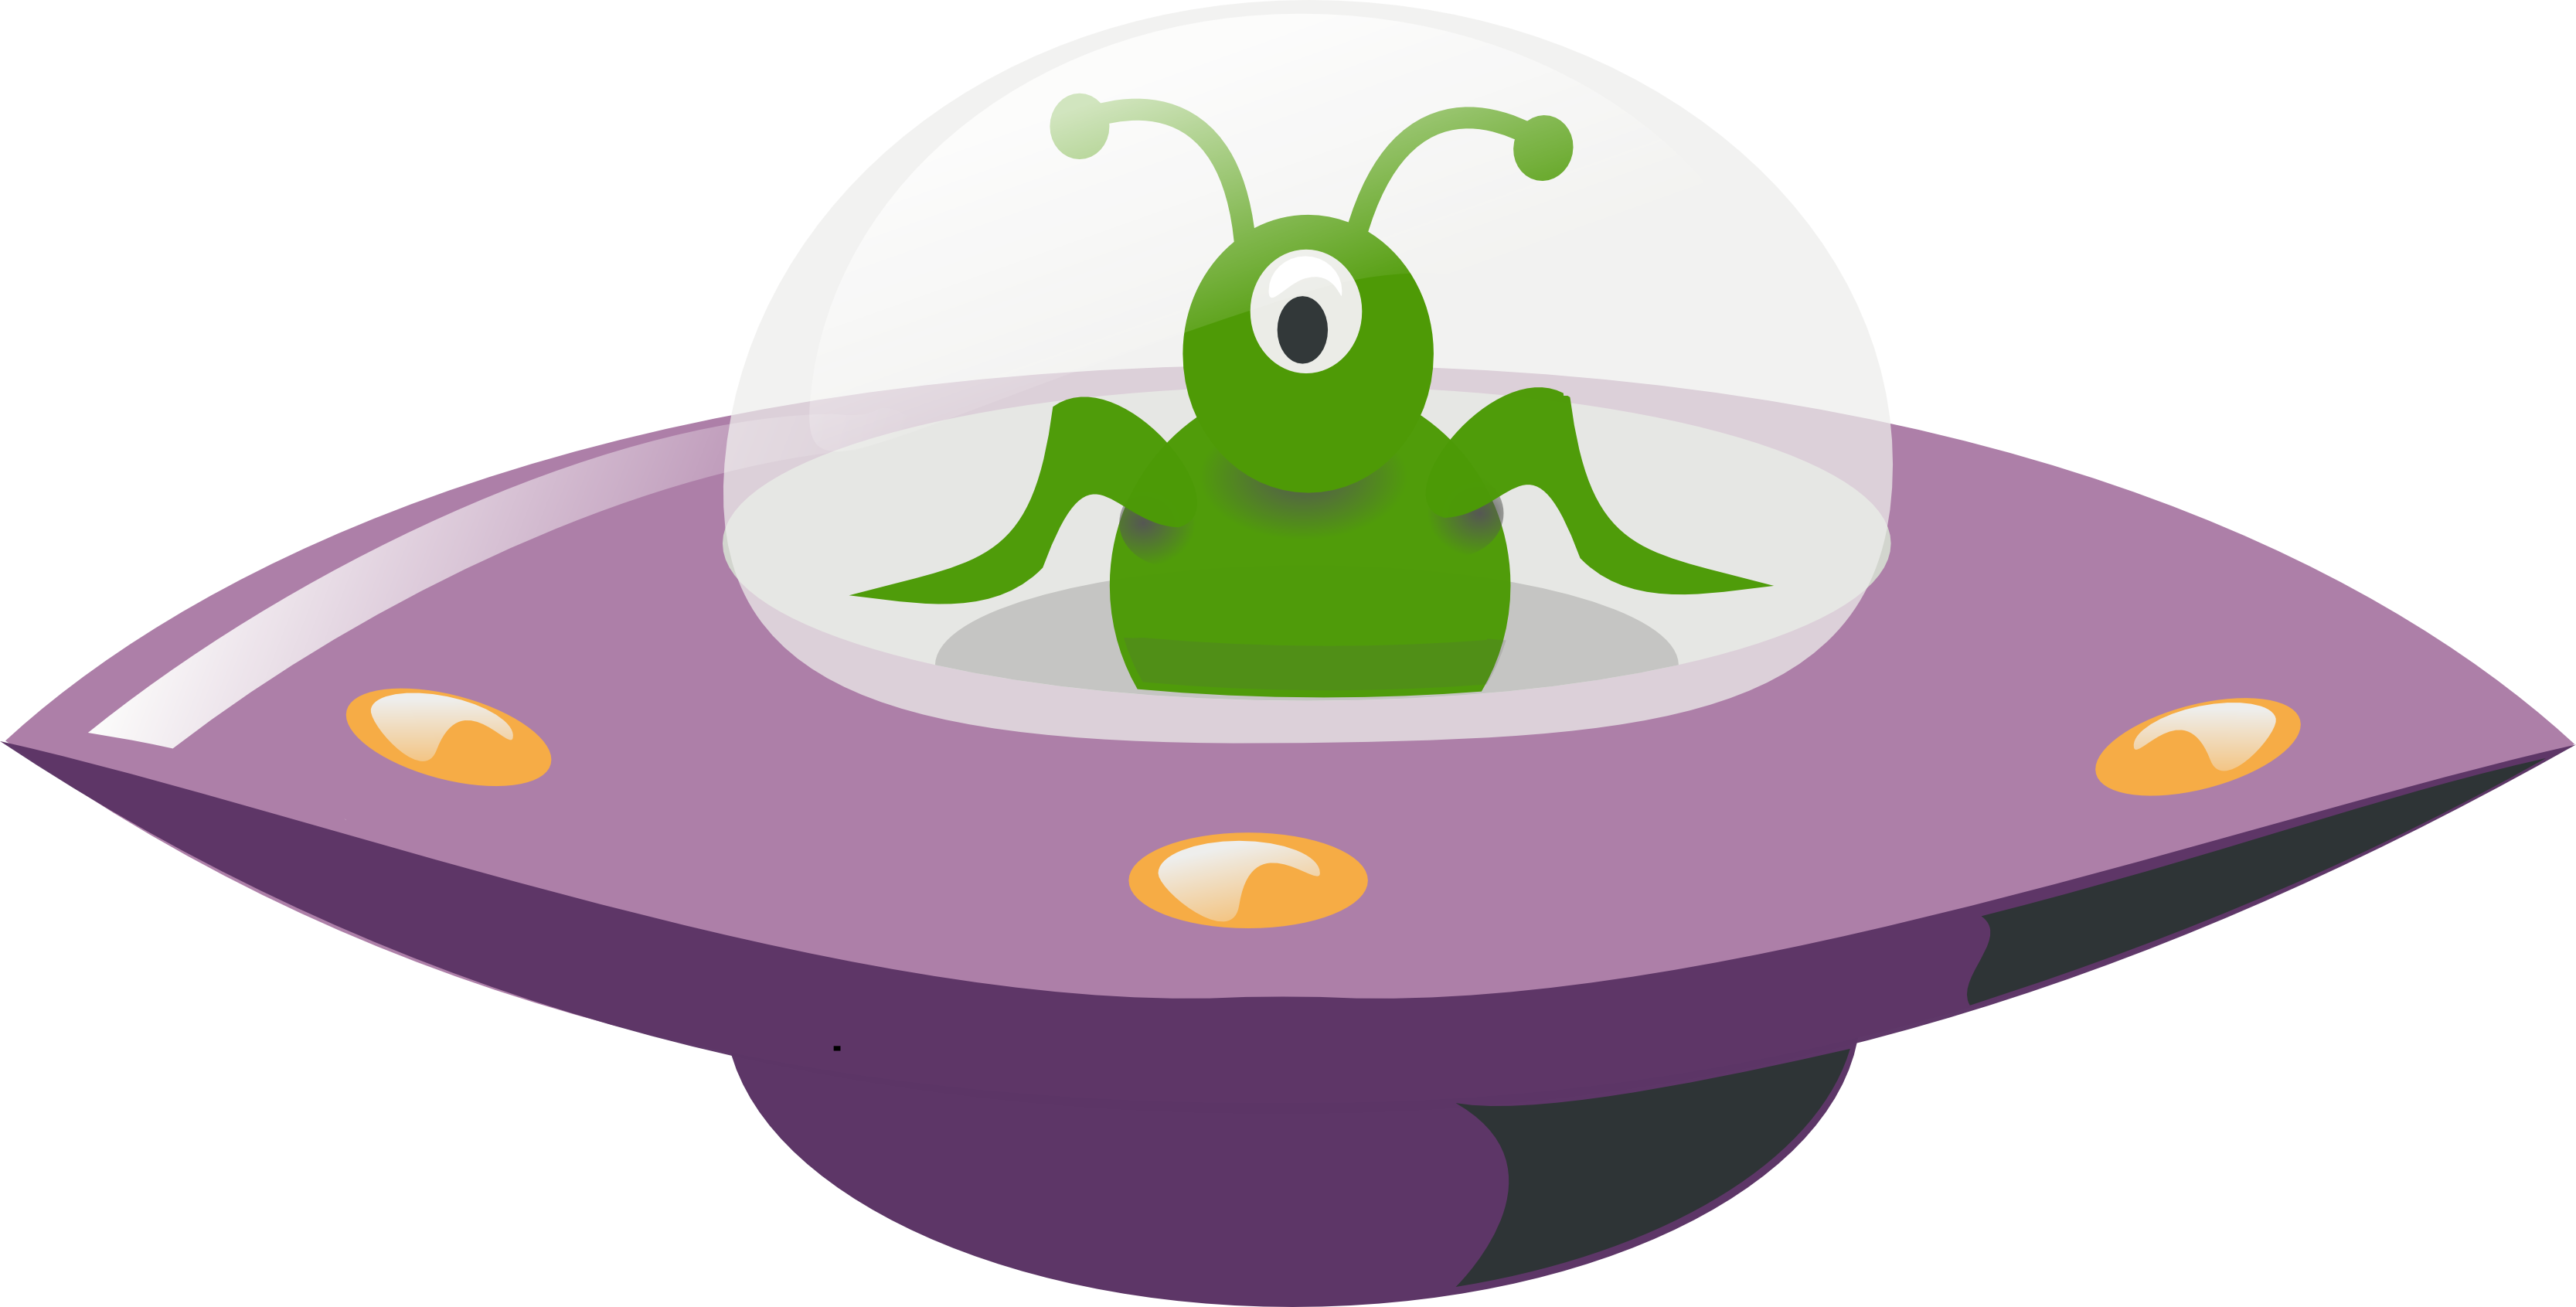 graphic freeuse transparent ufo blank background #106906361